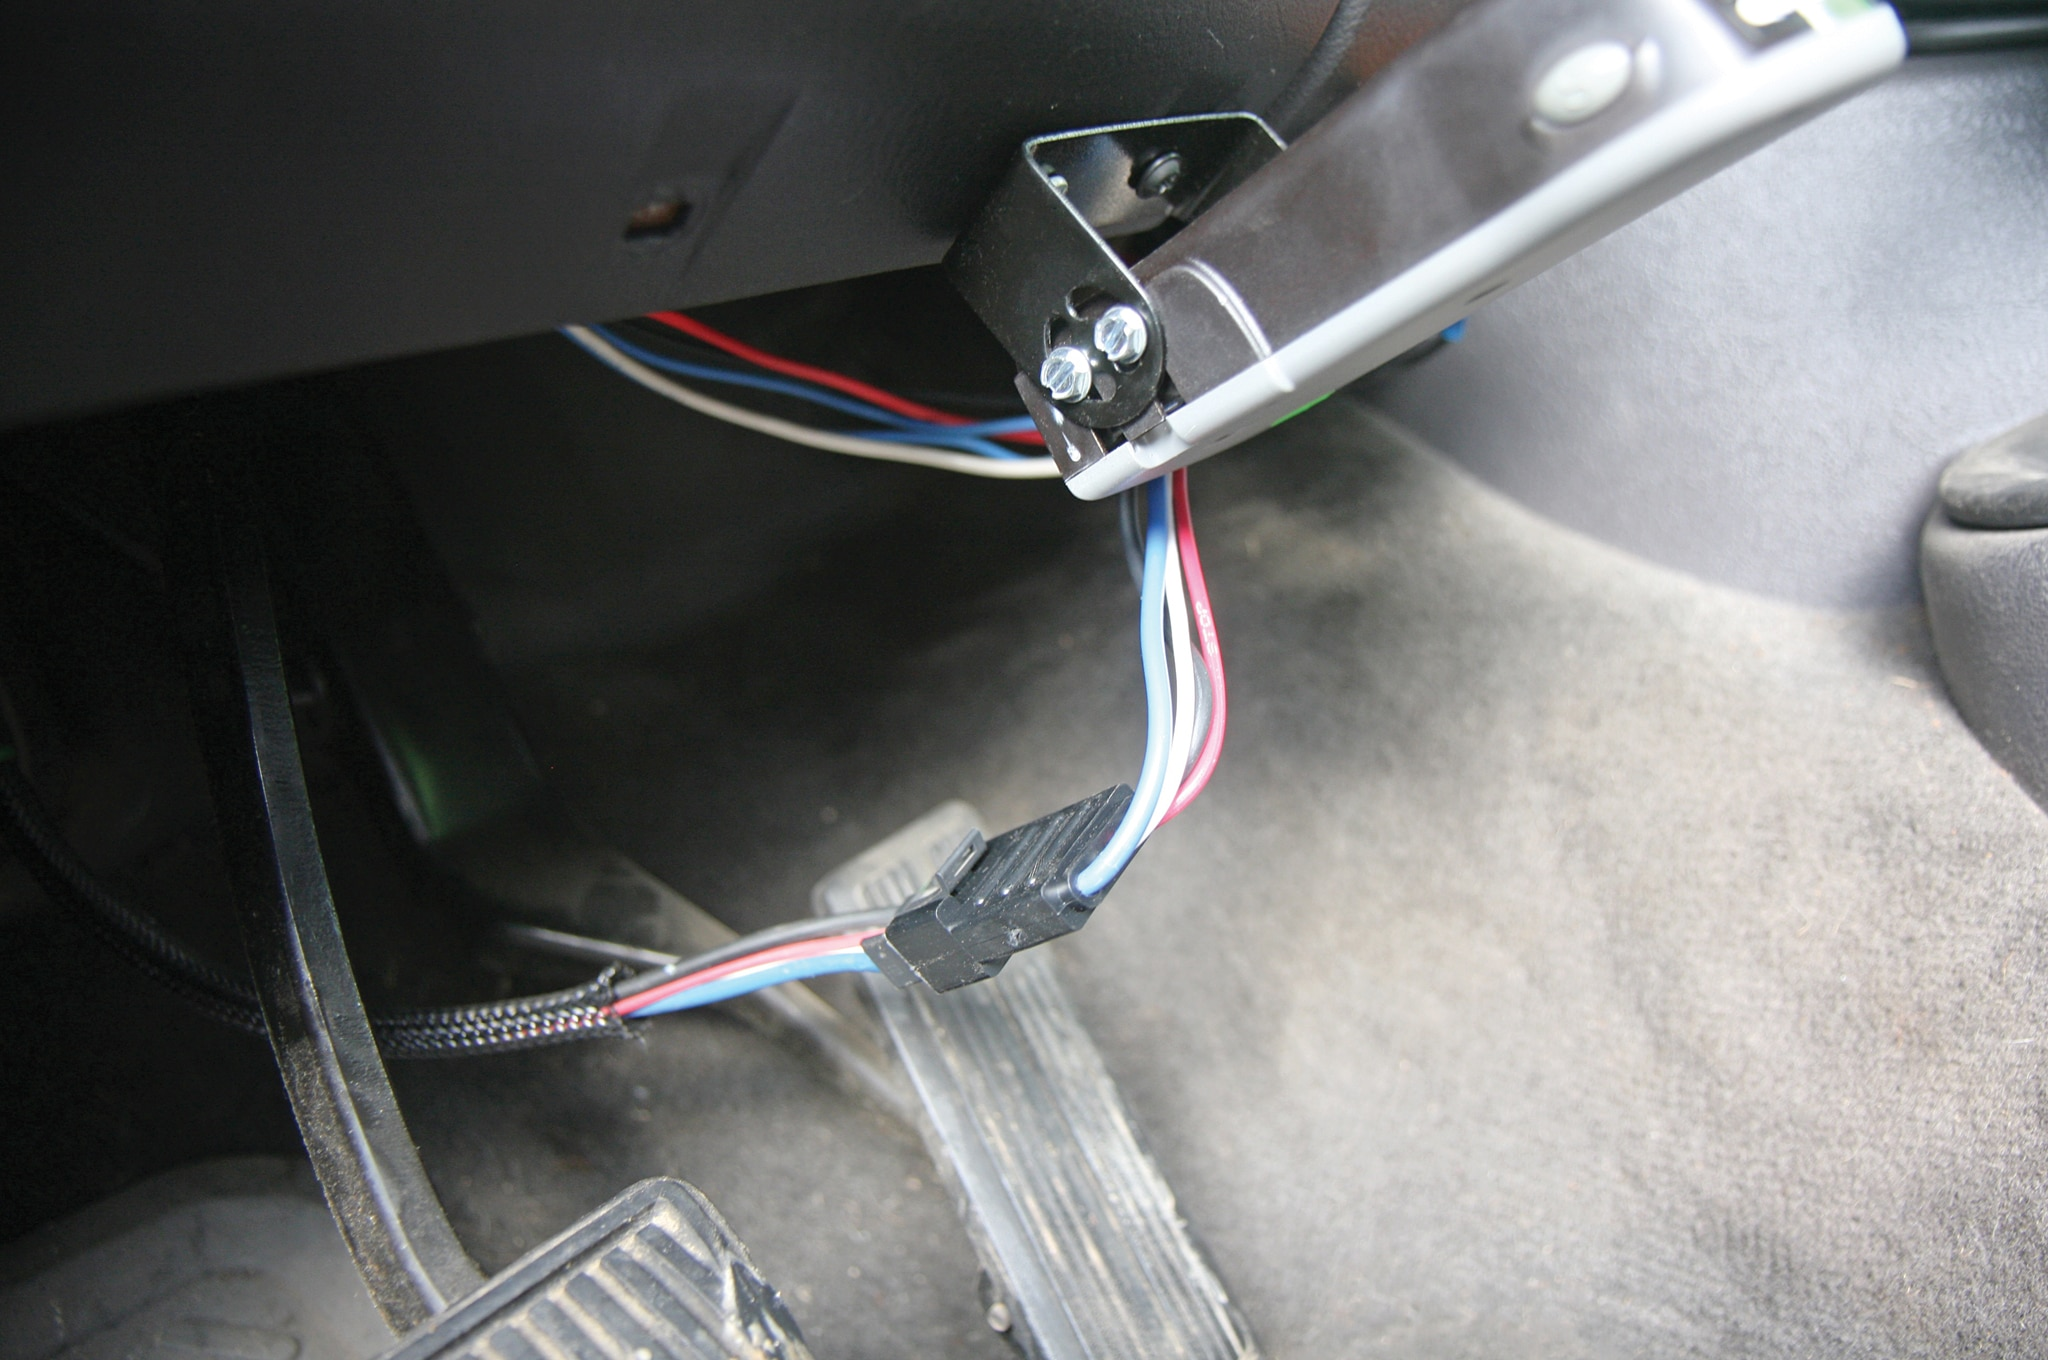 hight resolution of husky towing products quest brake controller wiring view photo gallery 7 photos